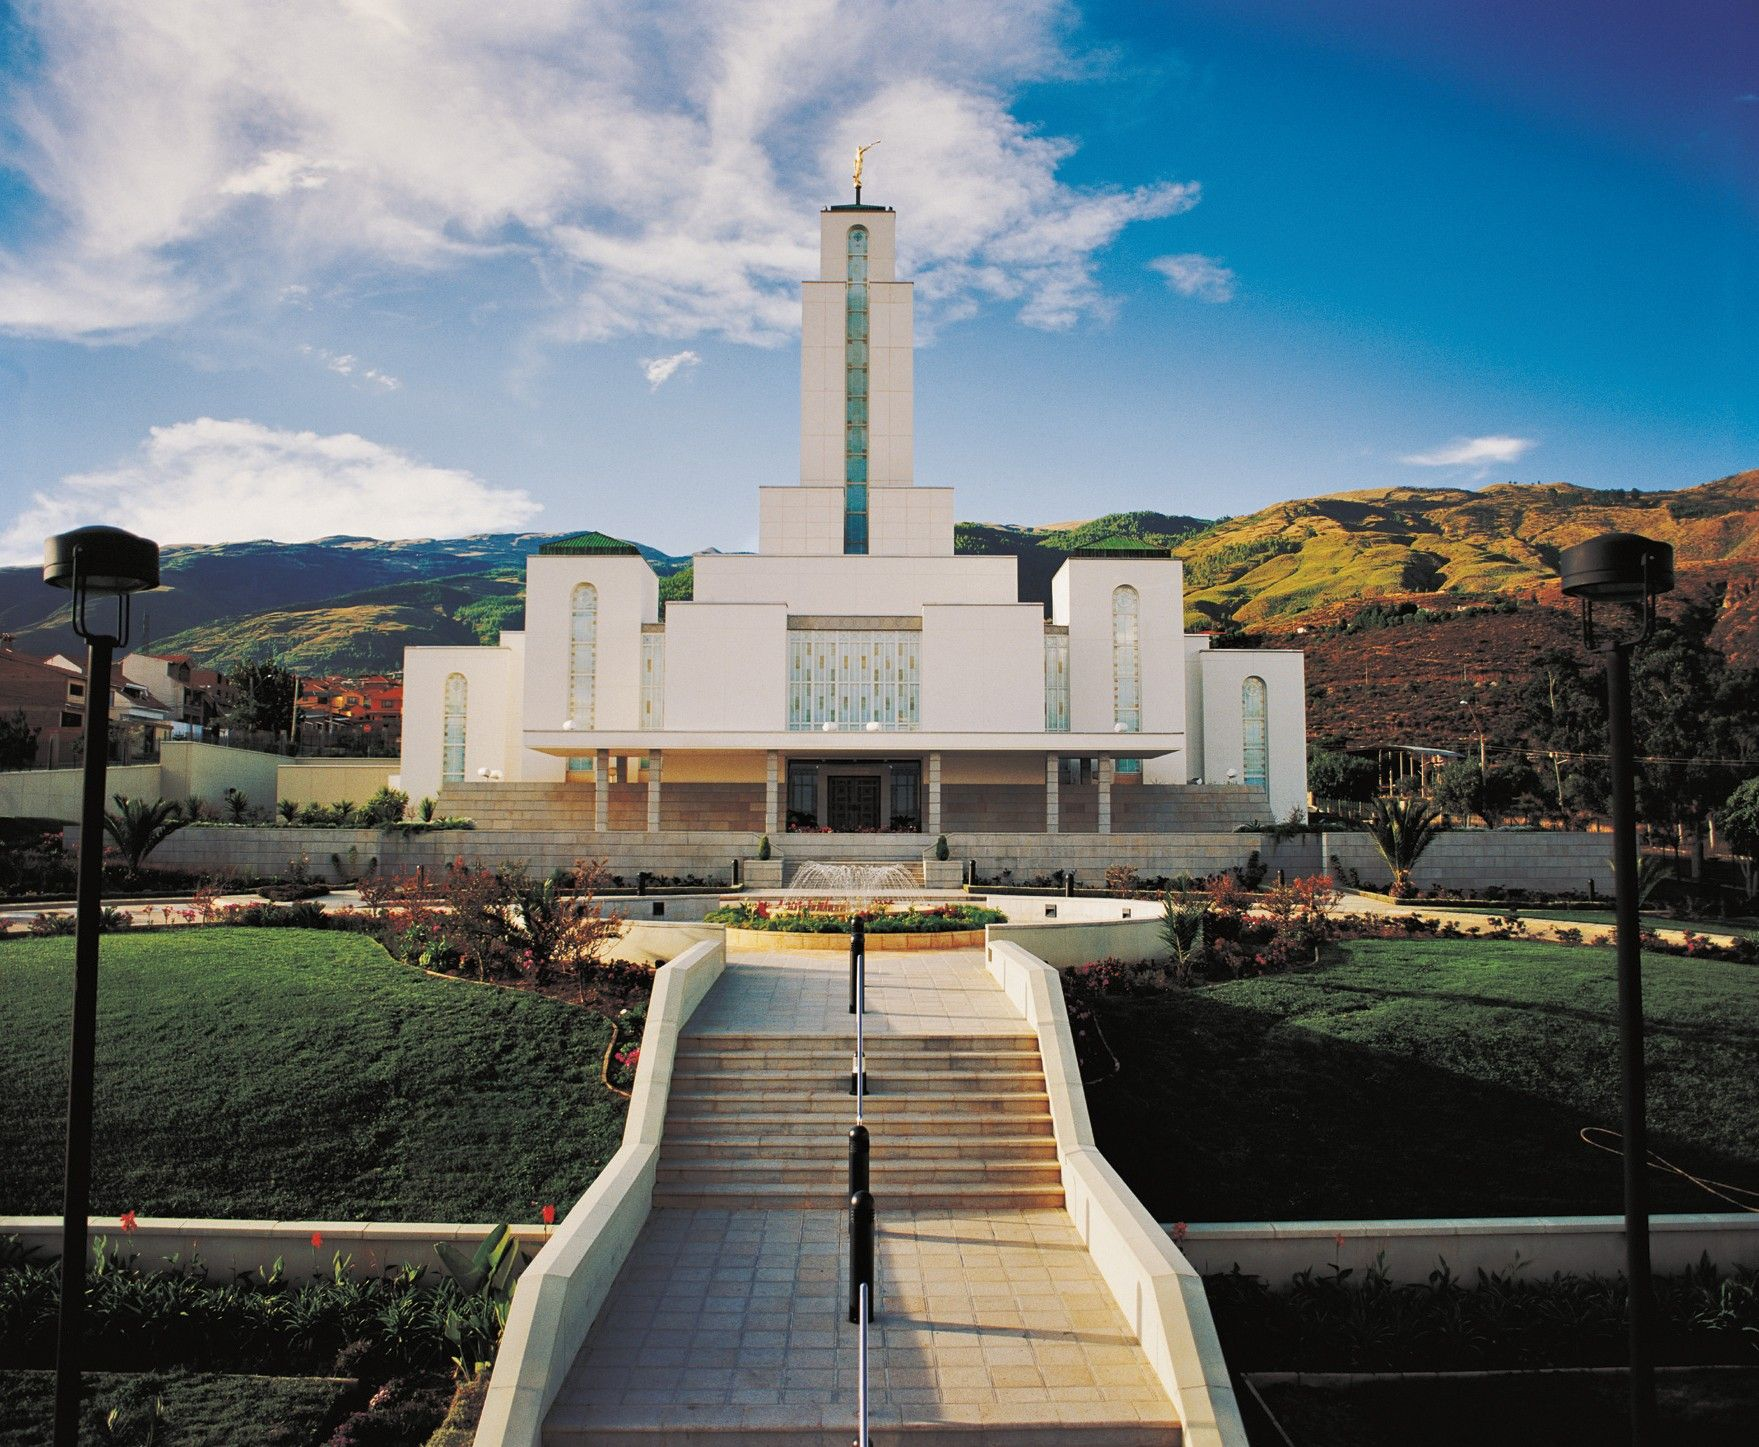 A front view of the Cochabamba Bolivia Temple on a sunny day.